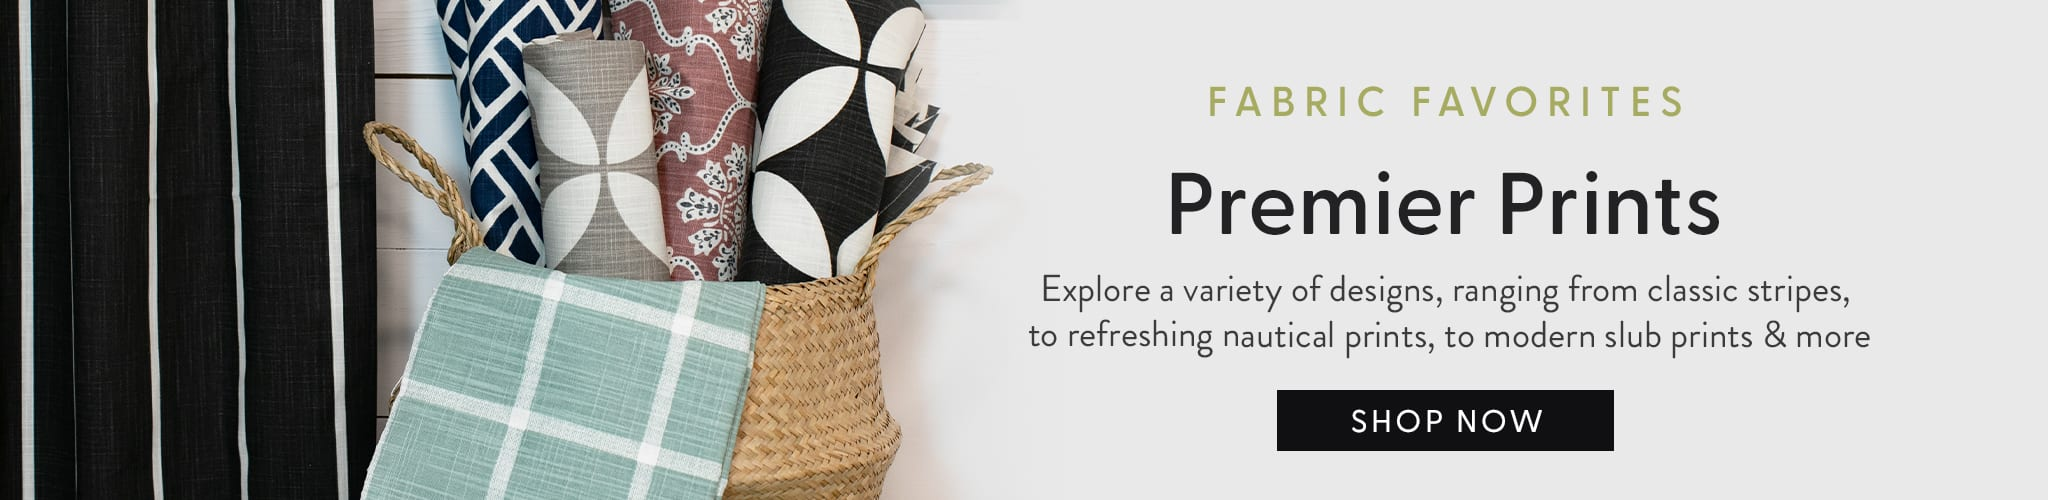 Fabric Favorites: Premier Prints - Explore a variety of designs ranging from classic stripes, to refreshing nautical prints, to modern slub prints & more.